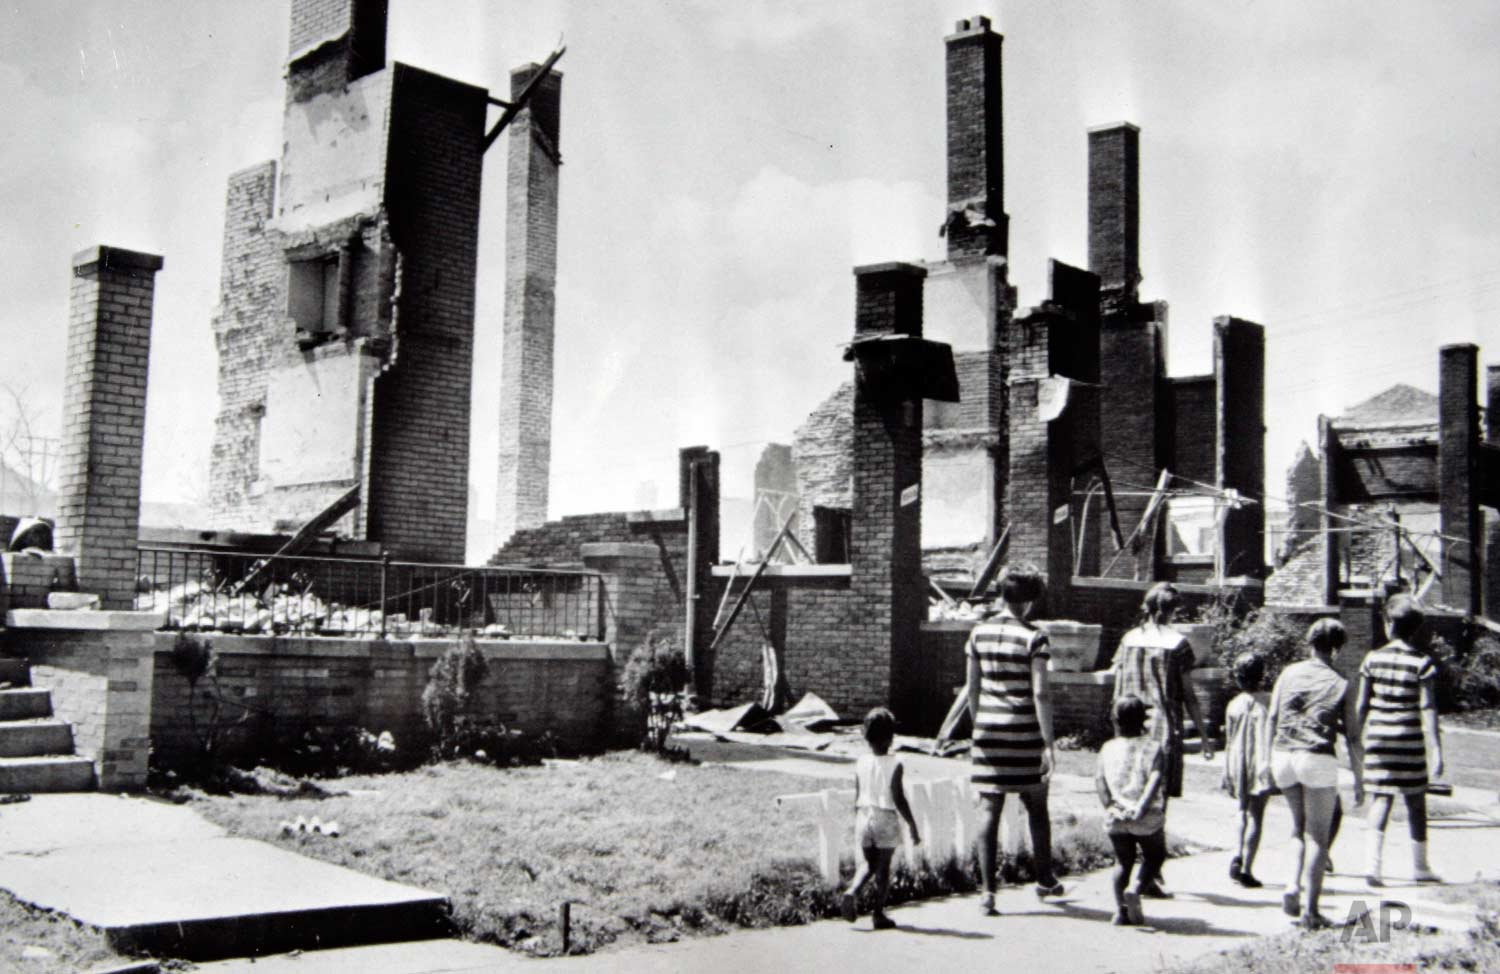 In this July 25, 1967 photo, women and children stroll past the burned remains of homes after riots in Detroit on July 23. The houses were a short distance from 12th Street, center of the riot activity. After the riots, a decline that had already begun would accelerate; Detroit was the nation's fourth biggest city in 1960, but would rank 21st by 2016. The middle class fled, and a proud city fell into poverty, crime and hopelessness. (AP Photo)